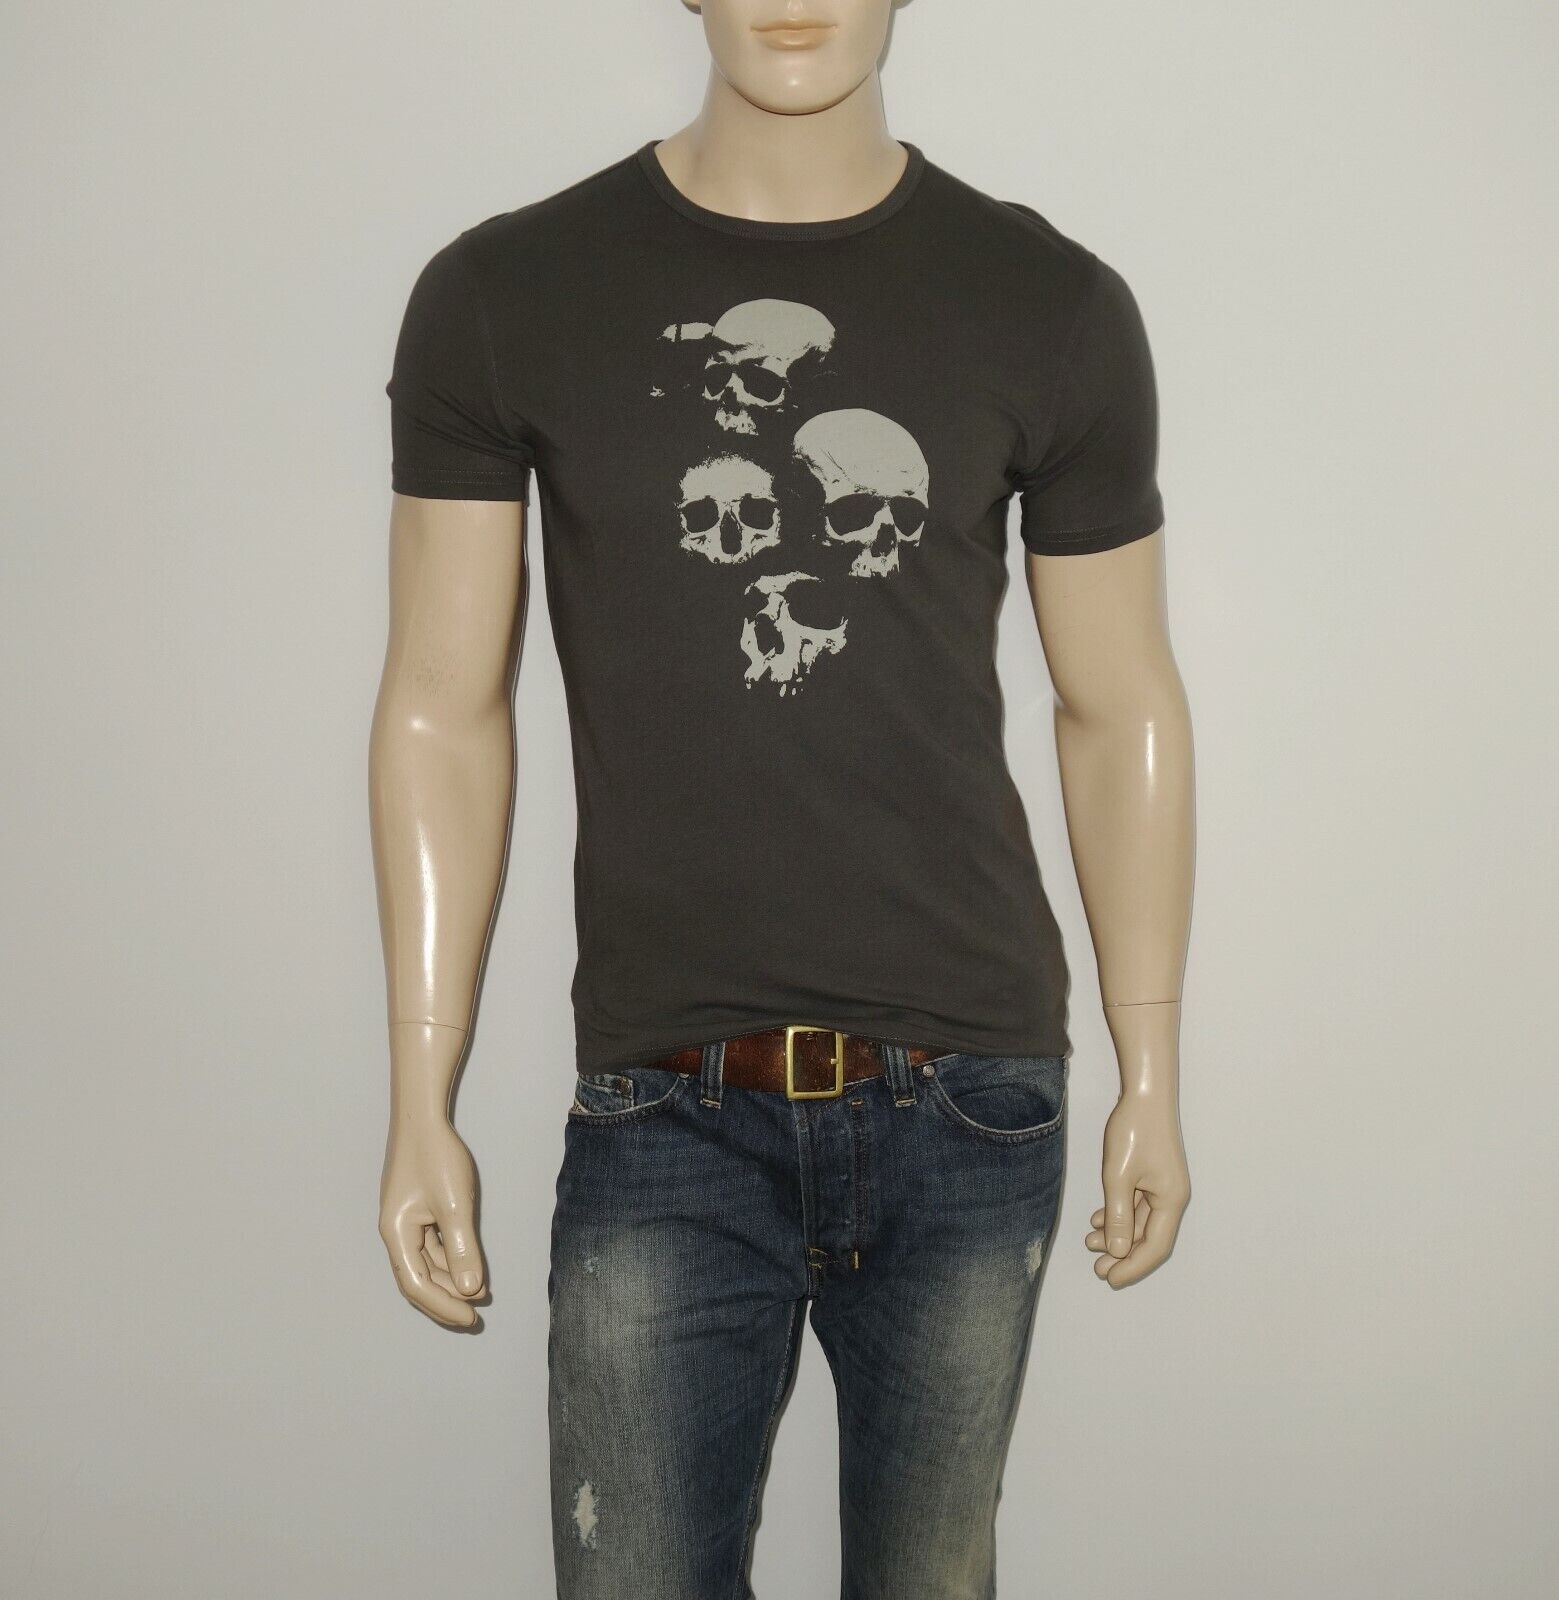 NEW John Varvatos Skulls Graphic Tee in Coal Size Small Short Sleeve